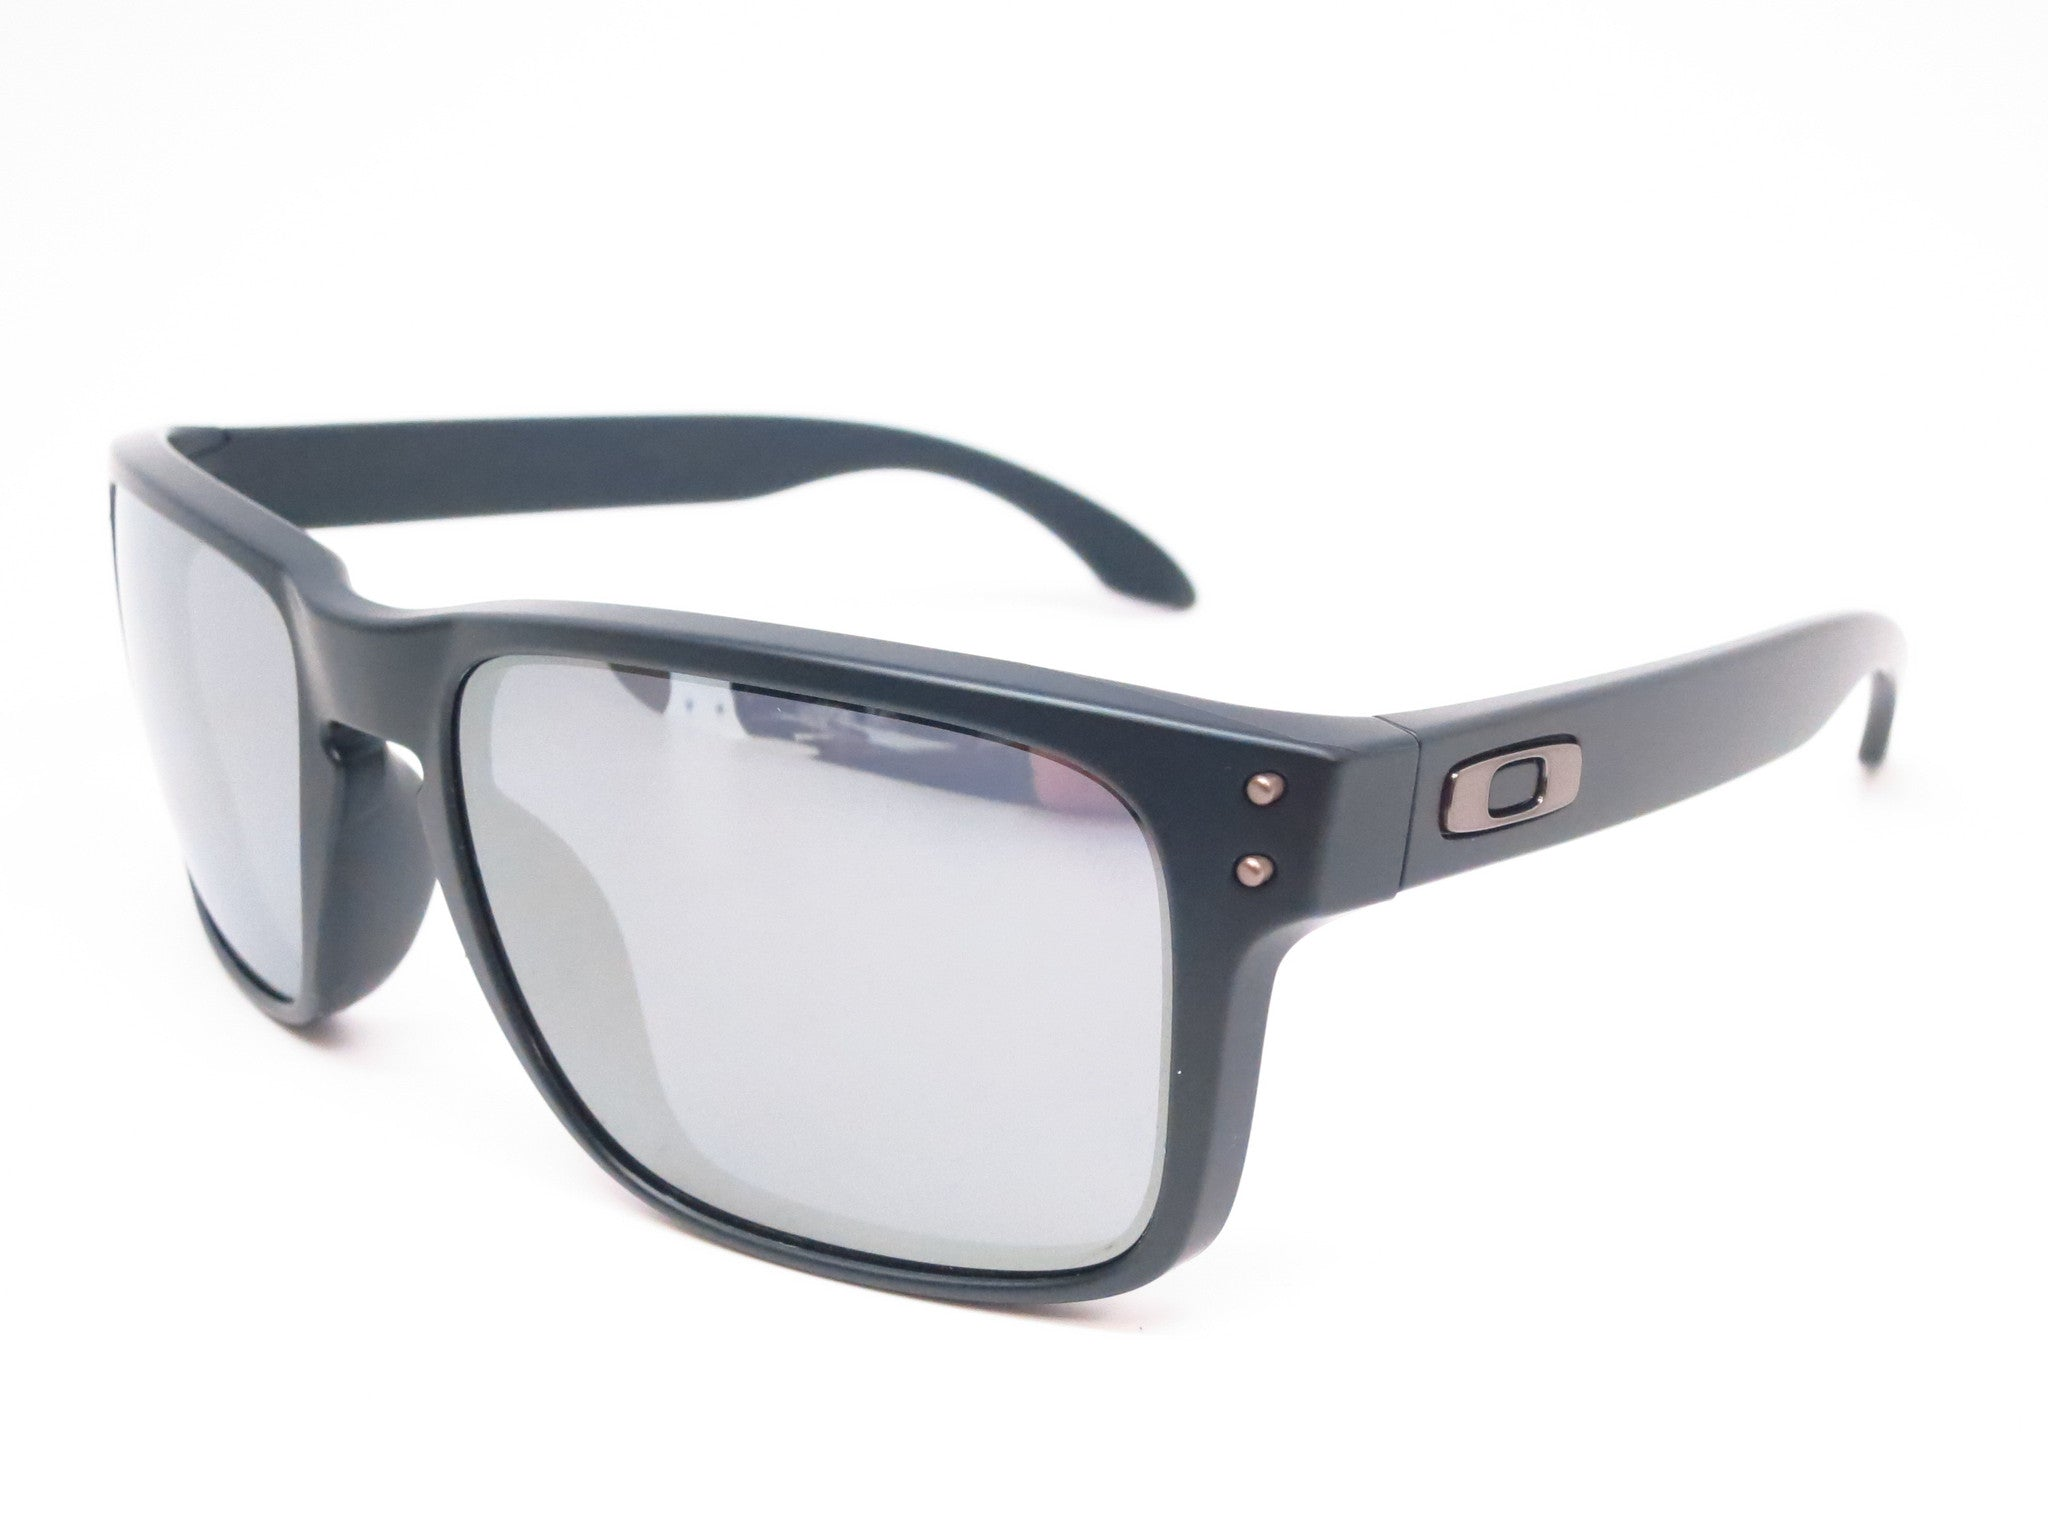 944b75084b Oakley Holbrook OO9102-63 Matte Black Sunglasses - Eye Heart Shades -  Oakley - Sunglasses ...